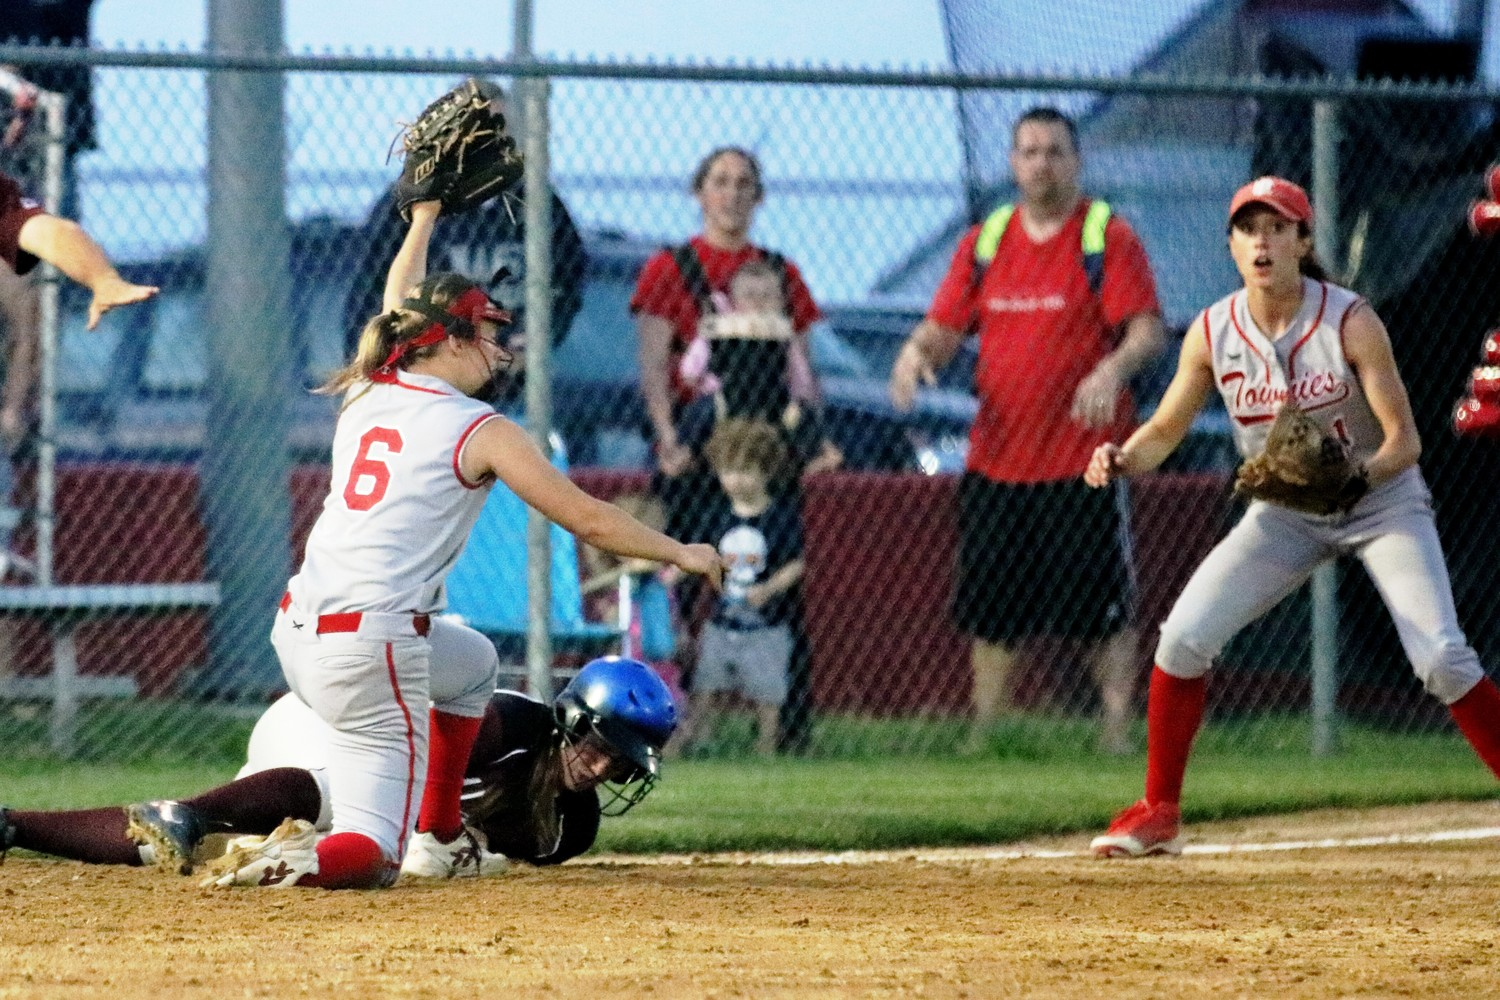 EP's Taylor Babcock trys to tag a Woonsocket runner out at third.